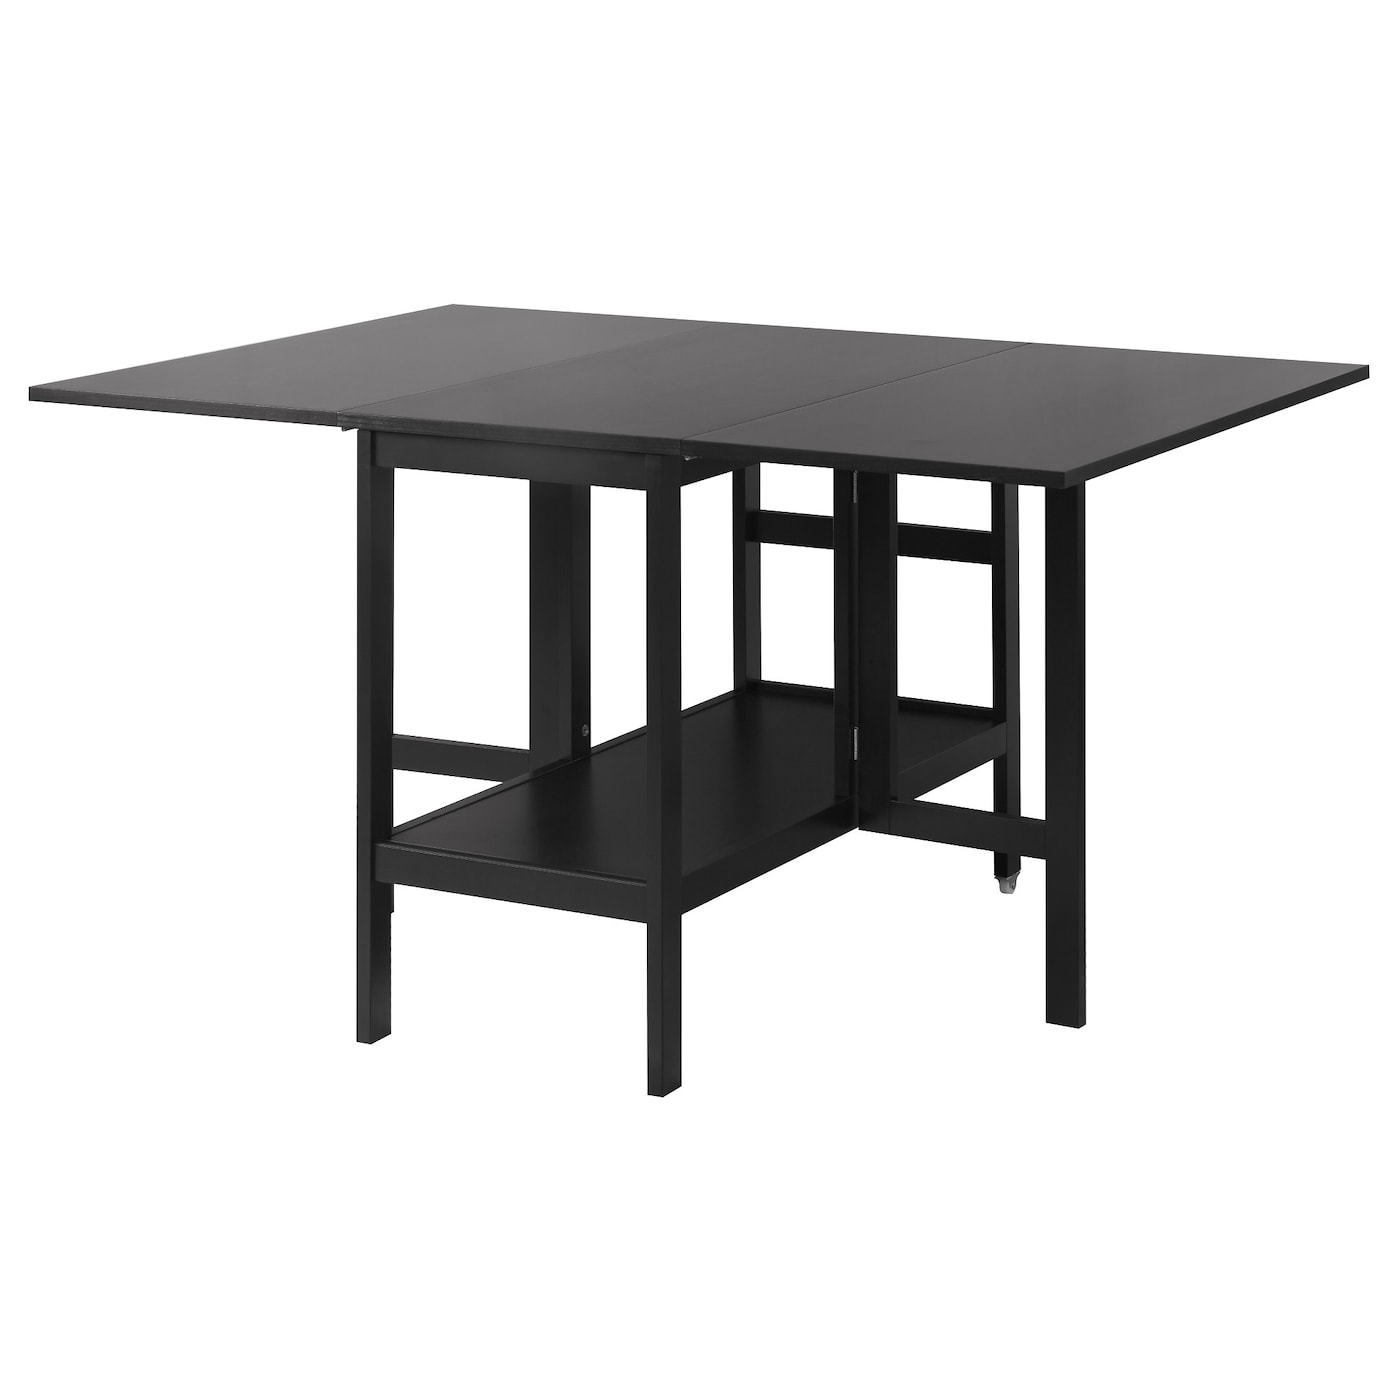 BARSVIKEN Drop leaf table Black 4590135x93 cm IKEA : barsviken drop leaf table black0368936pe549759s5 from www.ikea.com size 2000 x 2000 jpeg 142kB